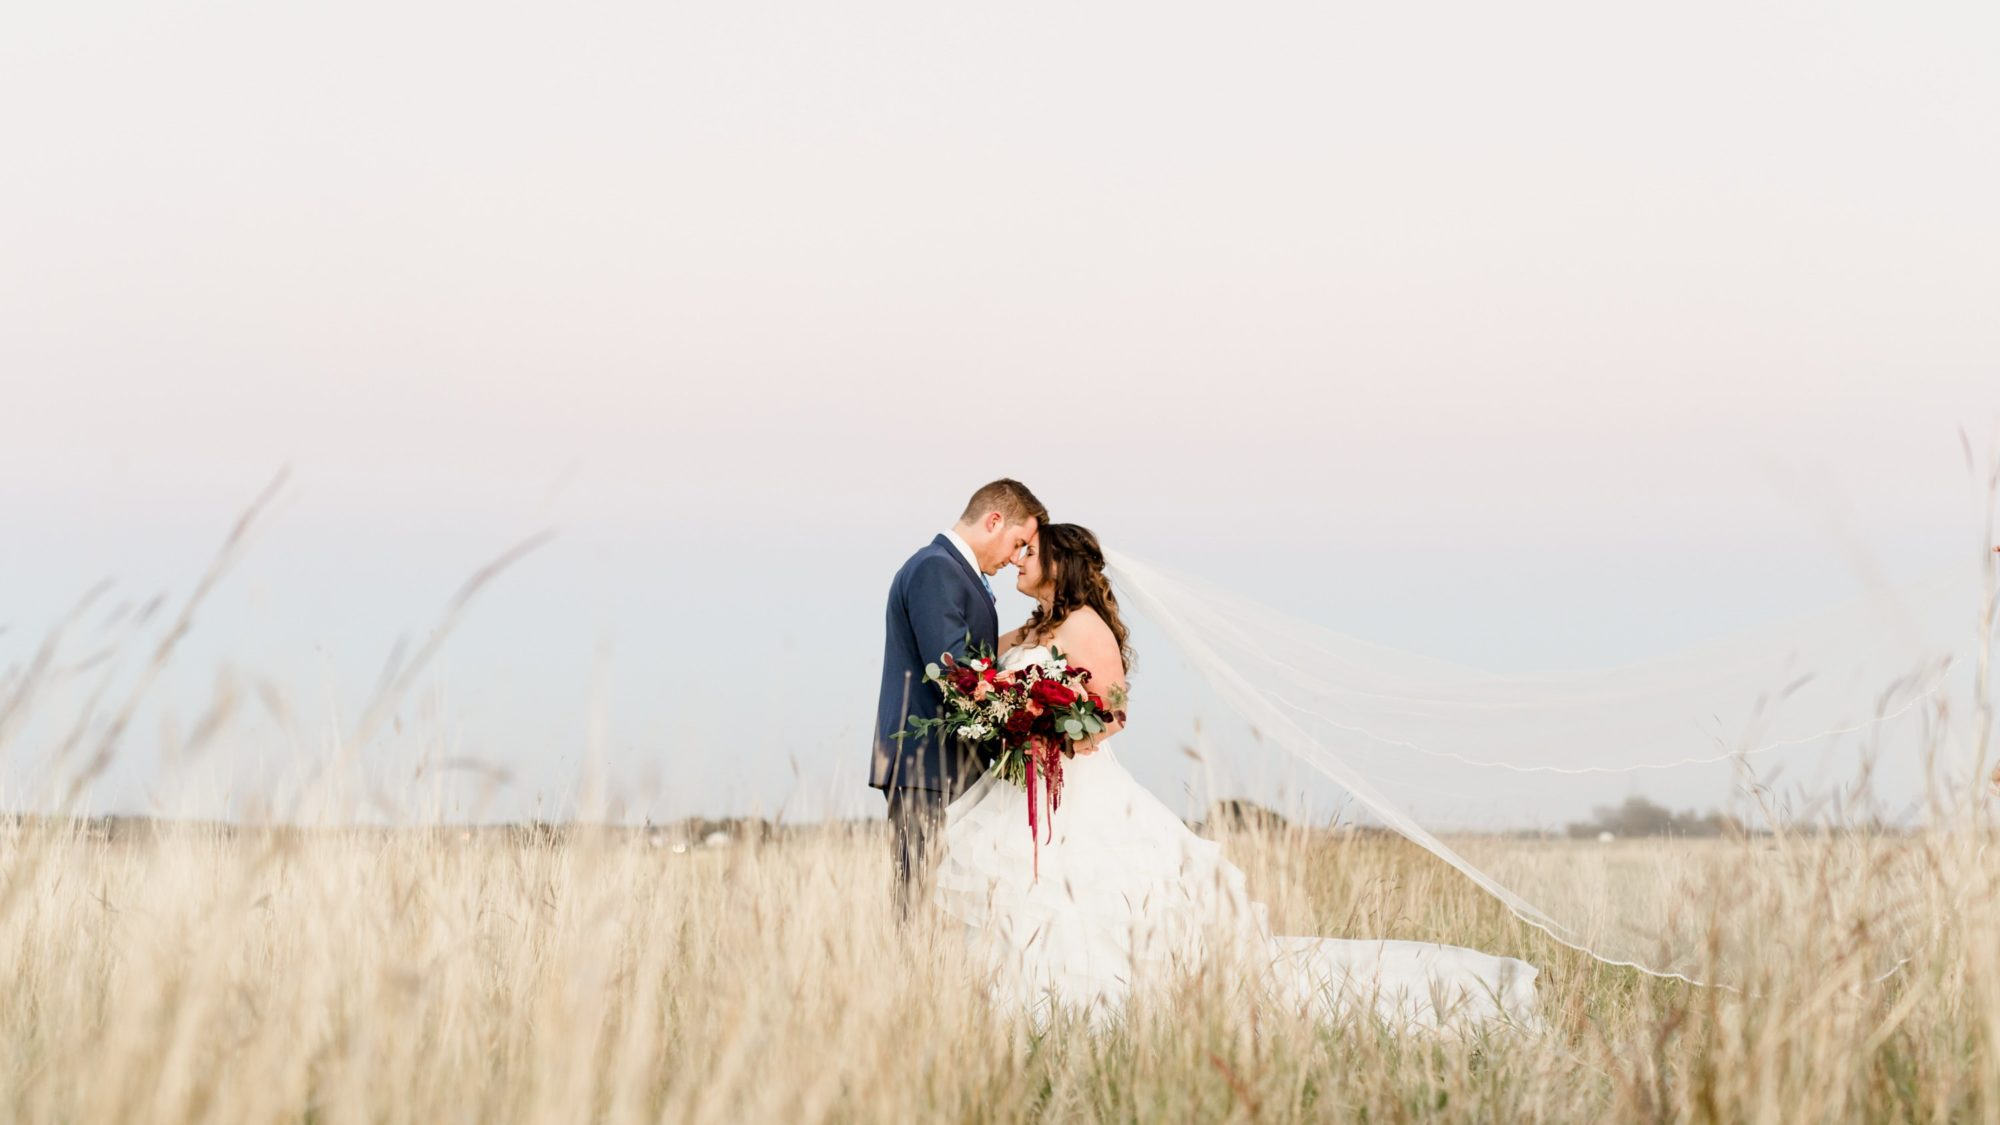 Get hitched in the hay! The Allen Farmhouse 52 acres of rolling hay fields provide an unparalleled backdrop for the perfect New Braunfels wedding or special event.